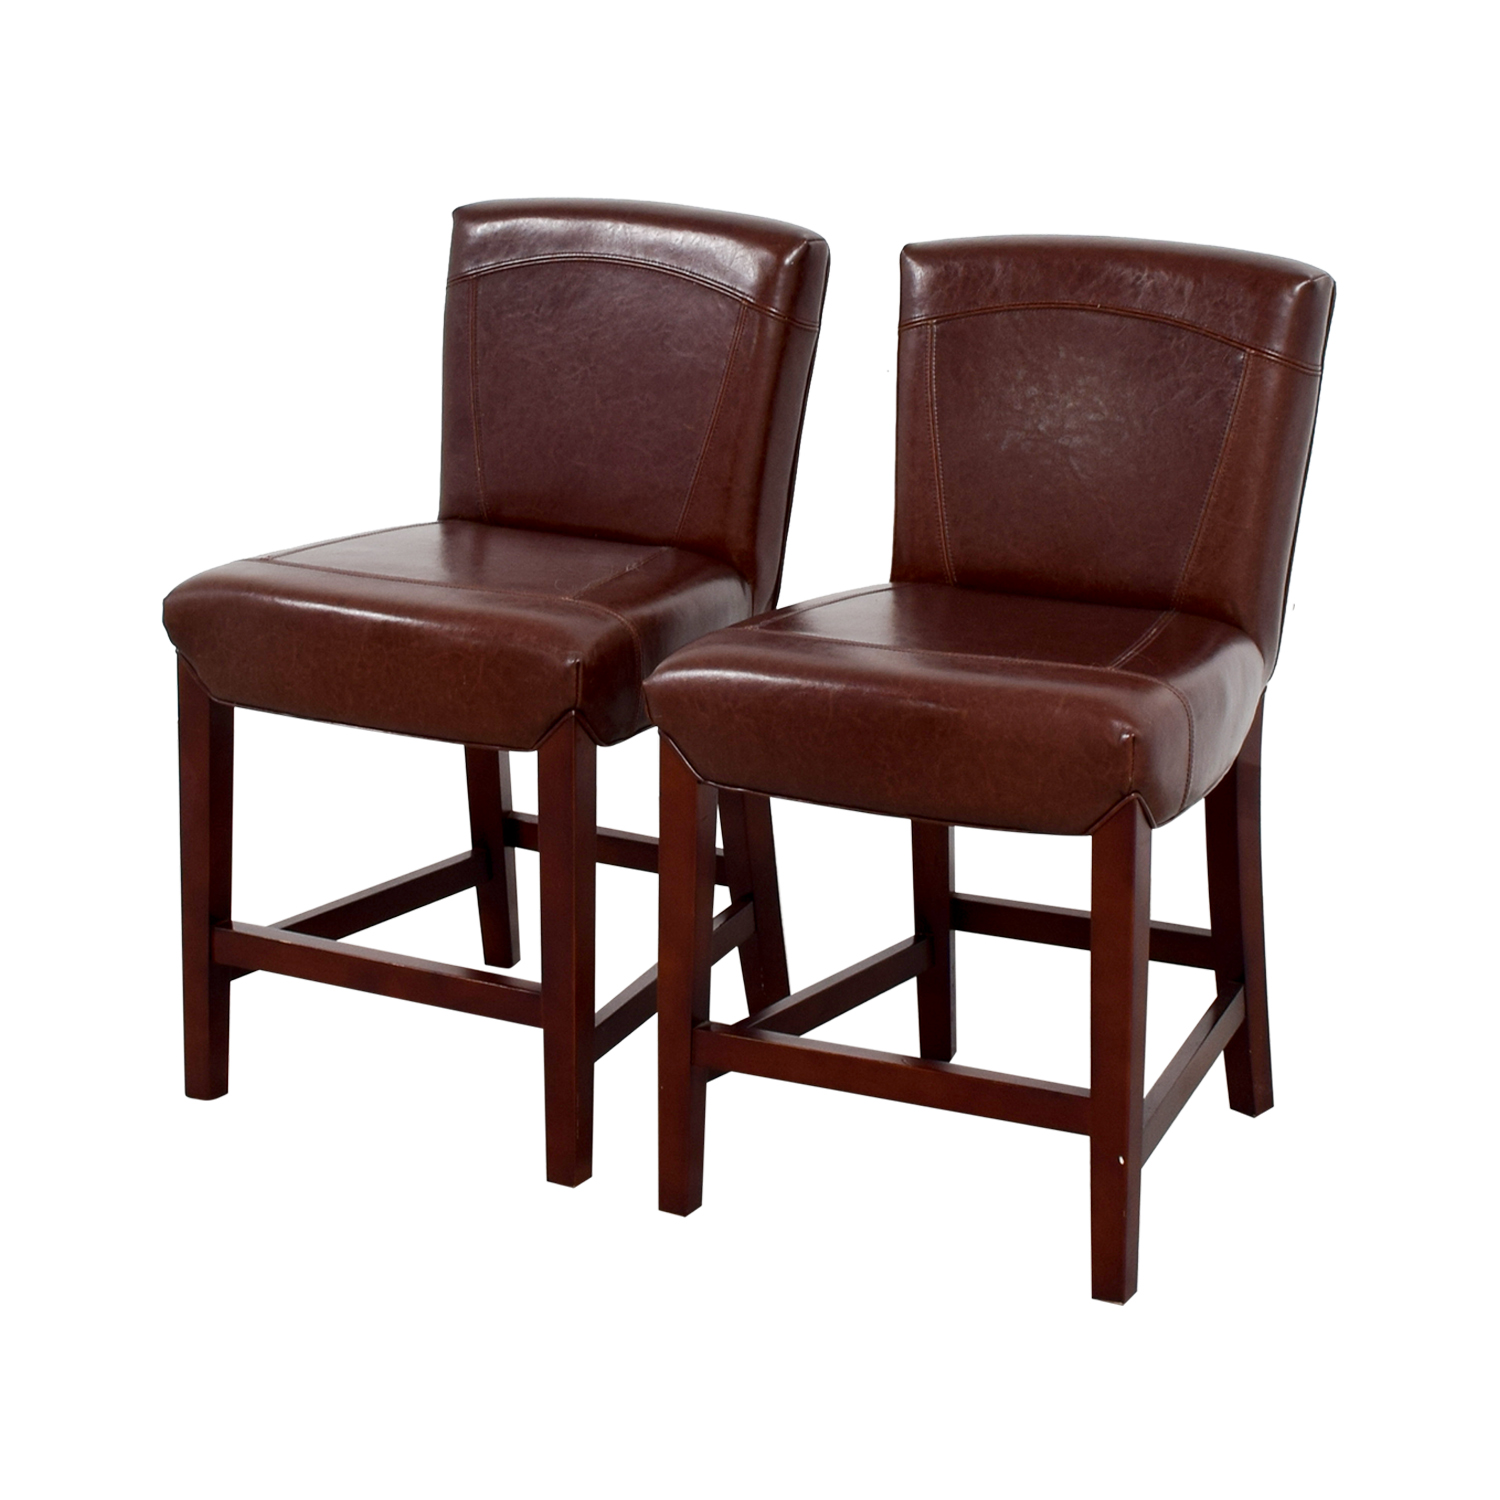 90 Off Crate Barrel Crate Barrel Brown Leather Bar Stools Chairs